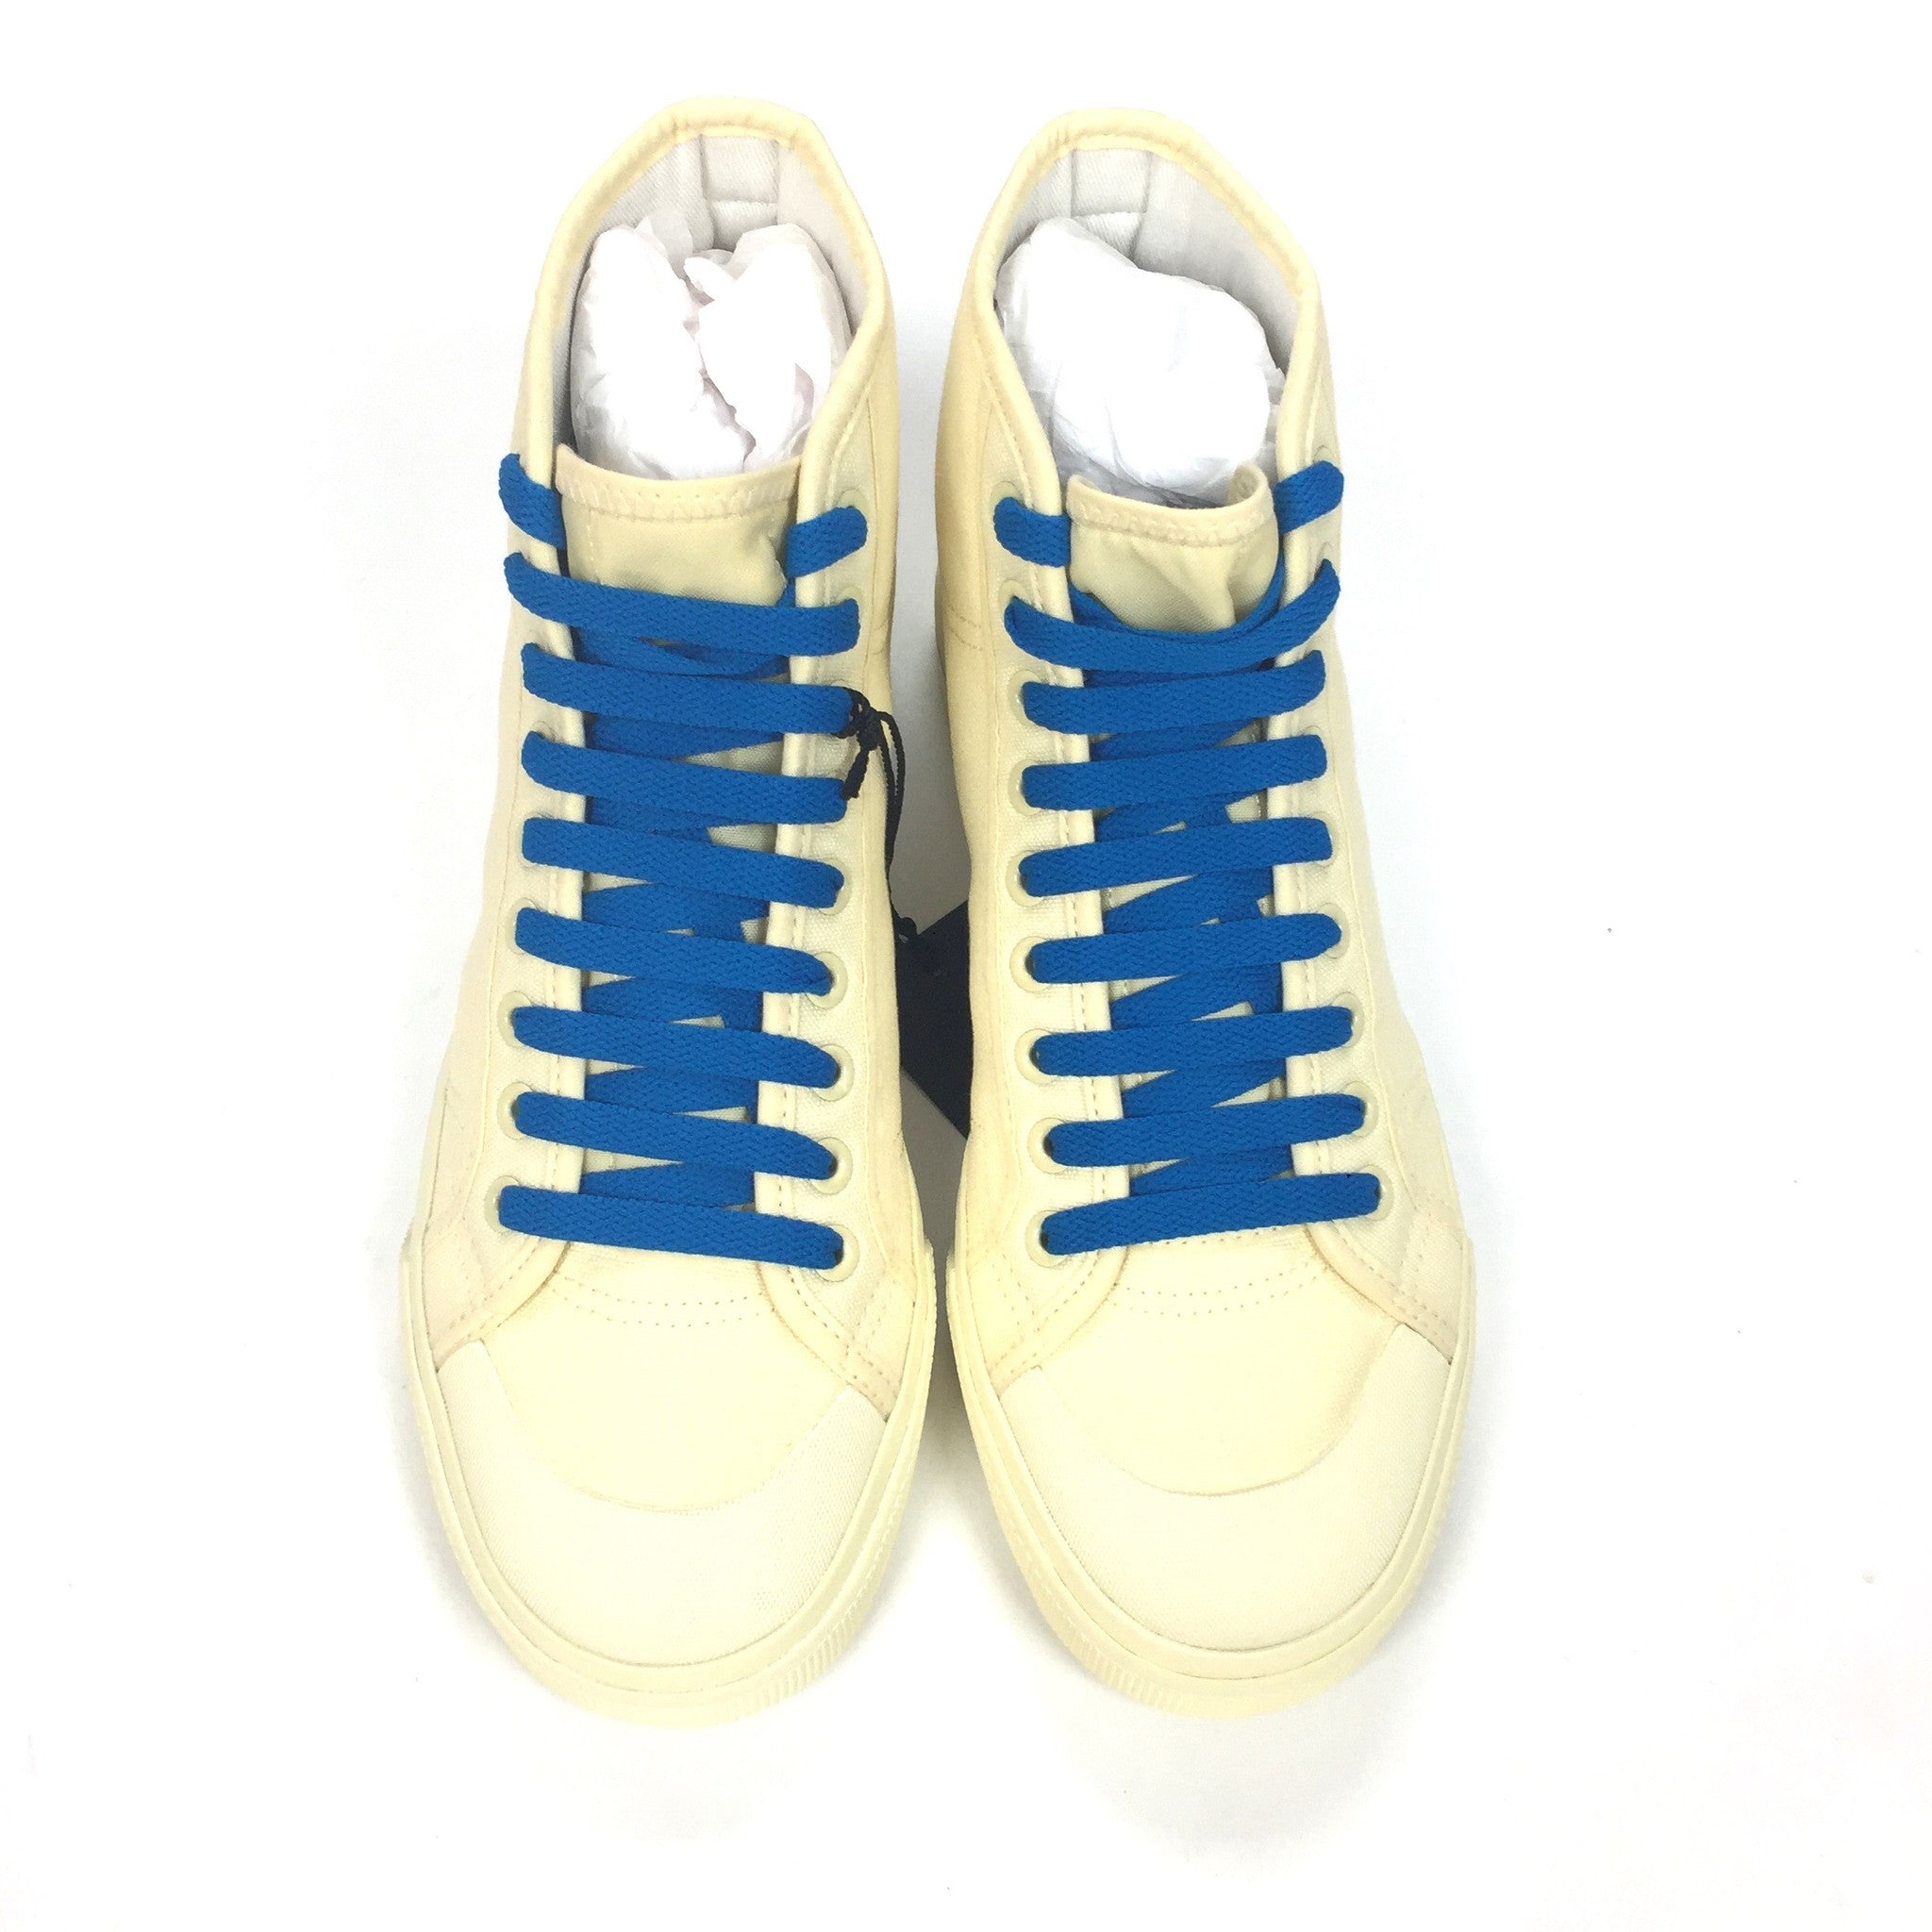 Adidas x Raf Simons - Mist Sun Matrix Spirit High